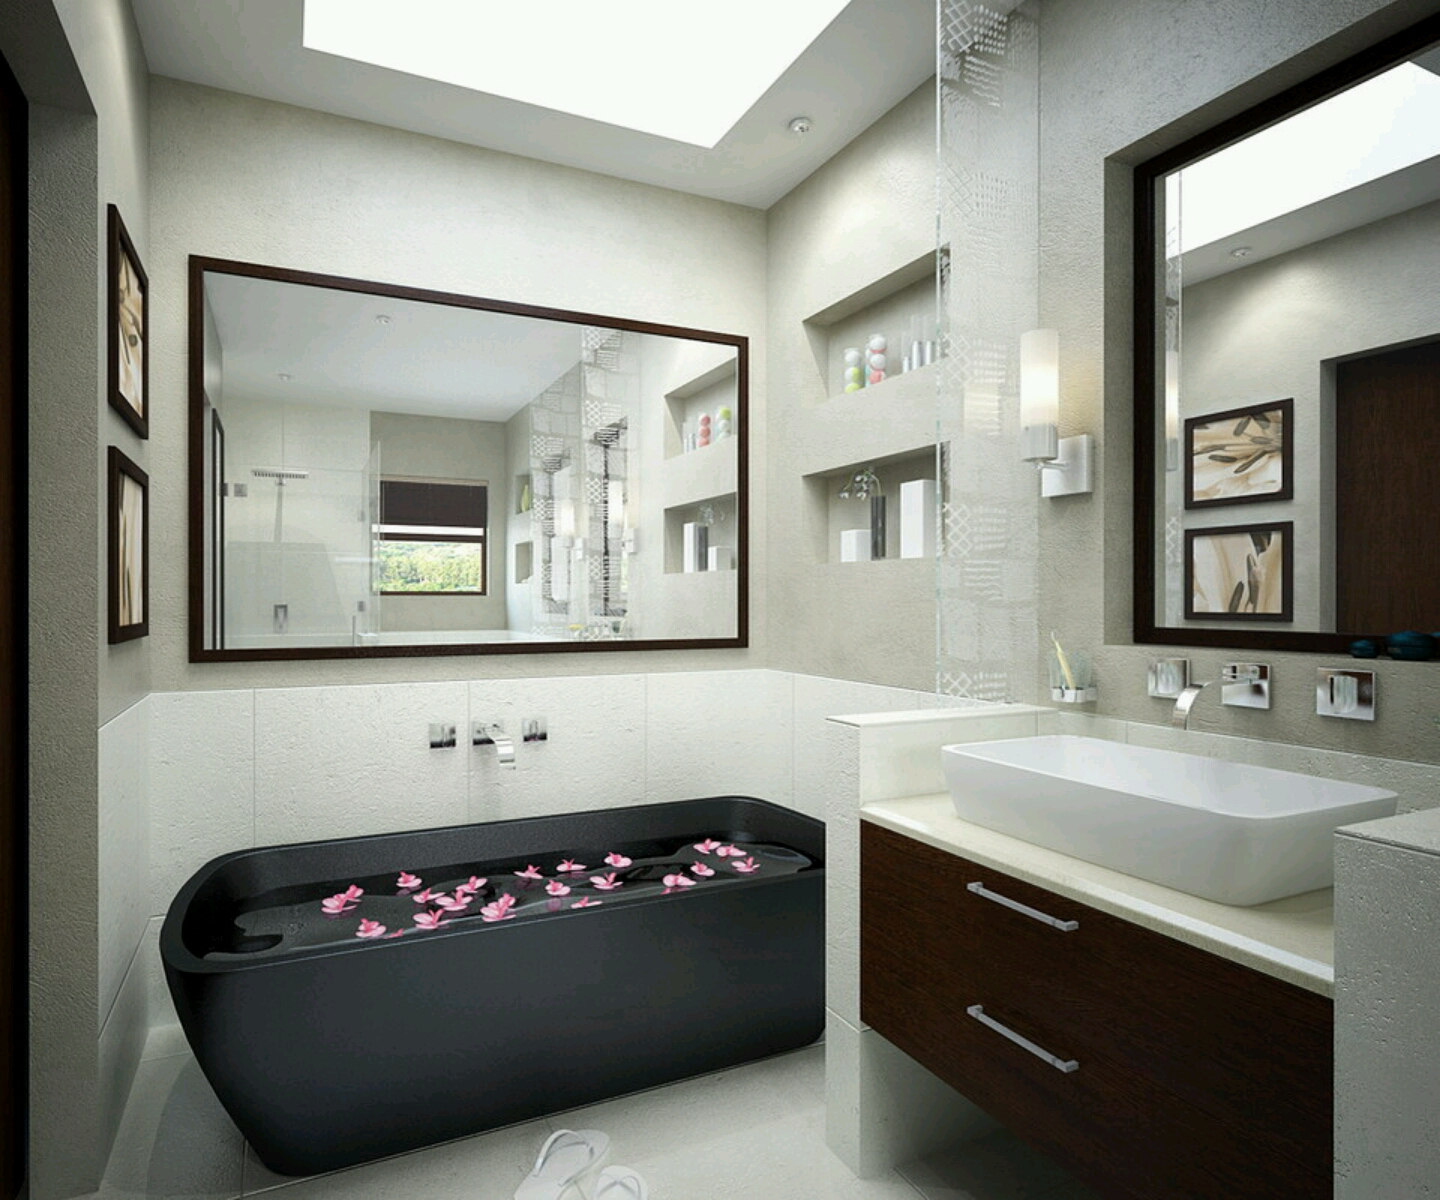 Modern Homes Modern Bathrooms Designs Ideas: Modern Bathrooms Cabinets Designs.